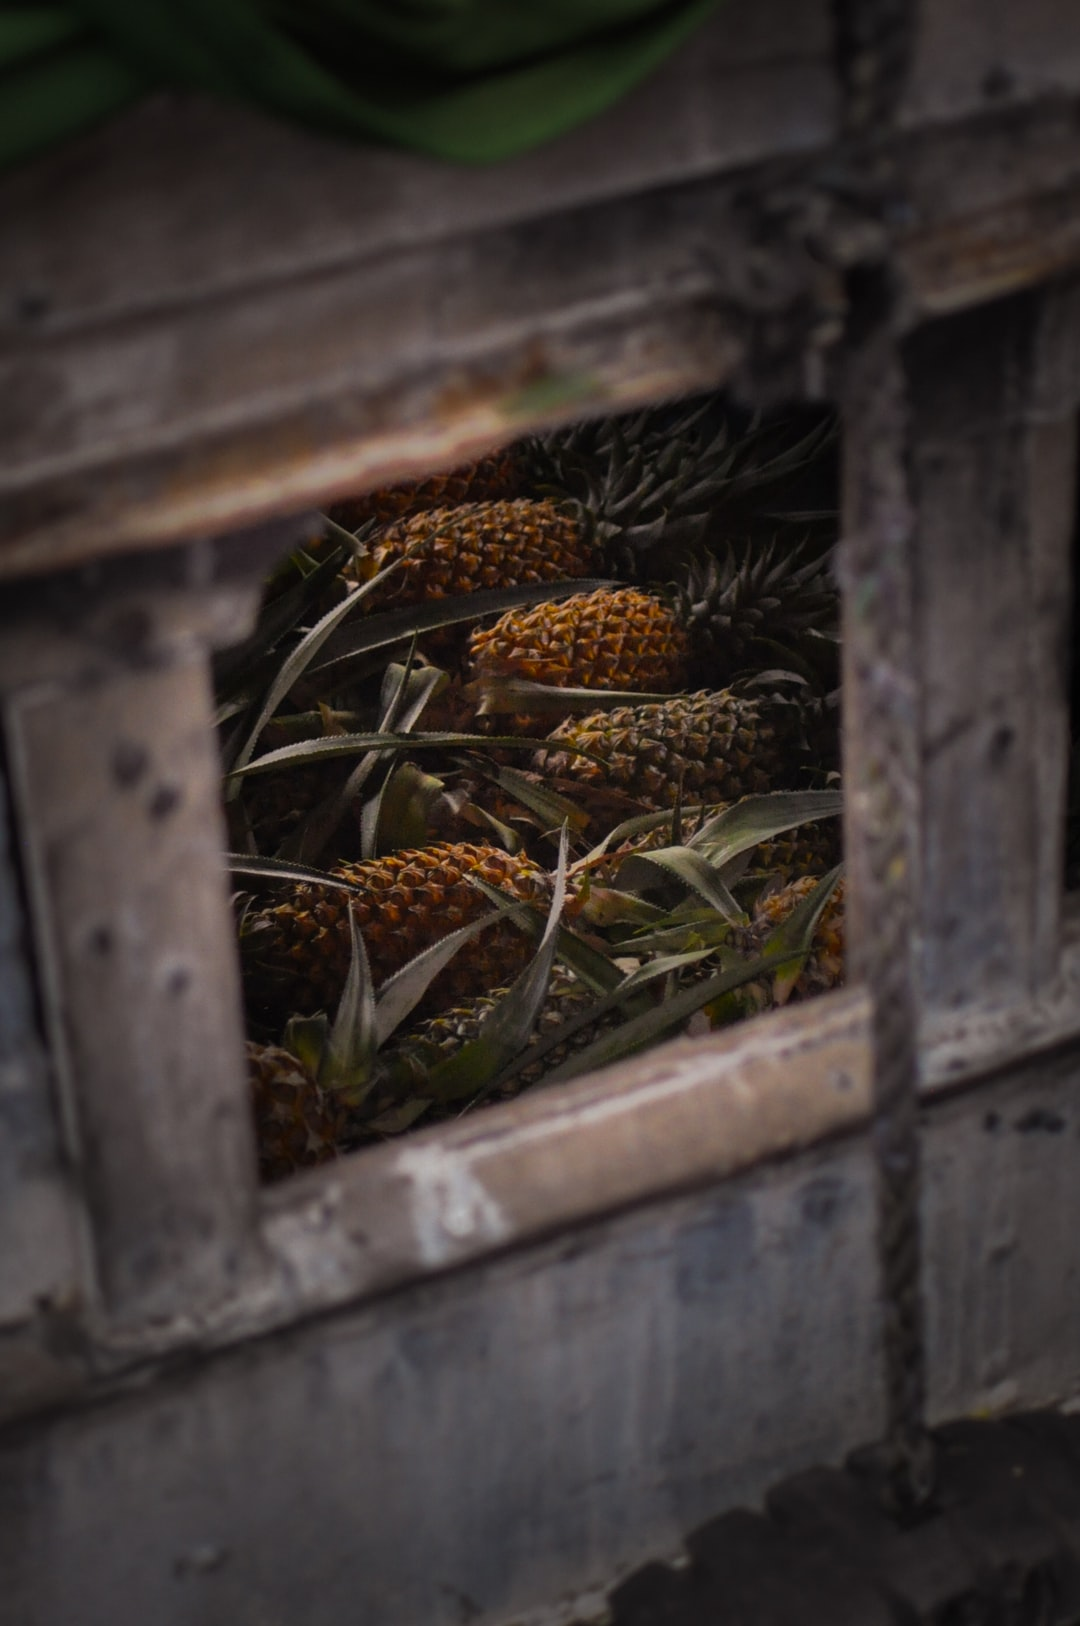 Wondering on the floating market in the Mekong delta, I picked through a window into a boat and found a few pineapples giving all their colors even in the darkness of the boat